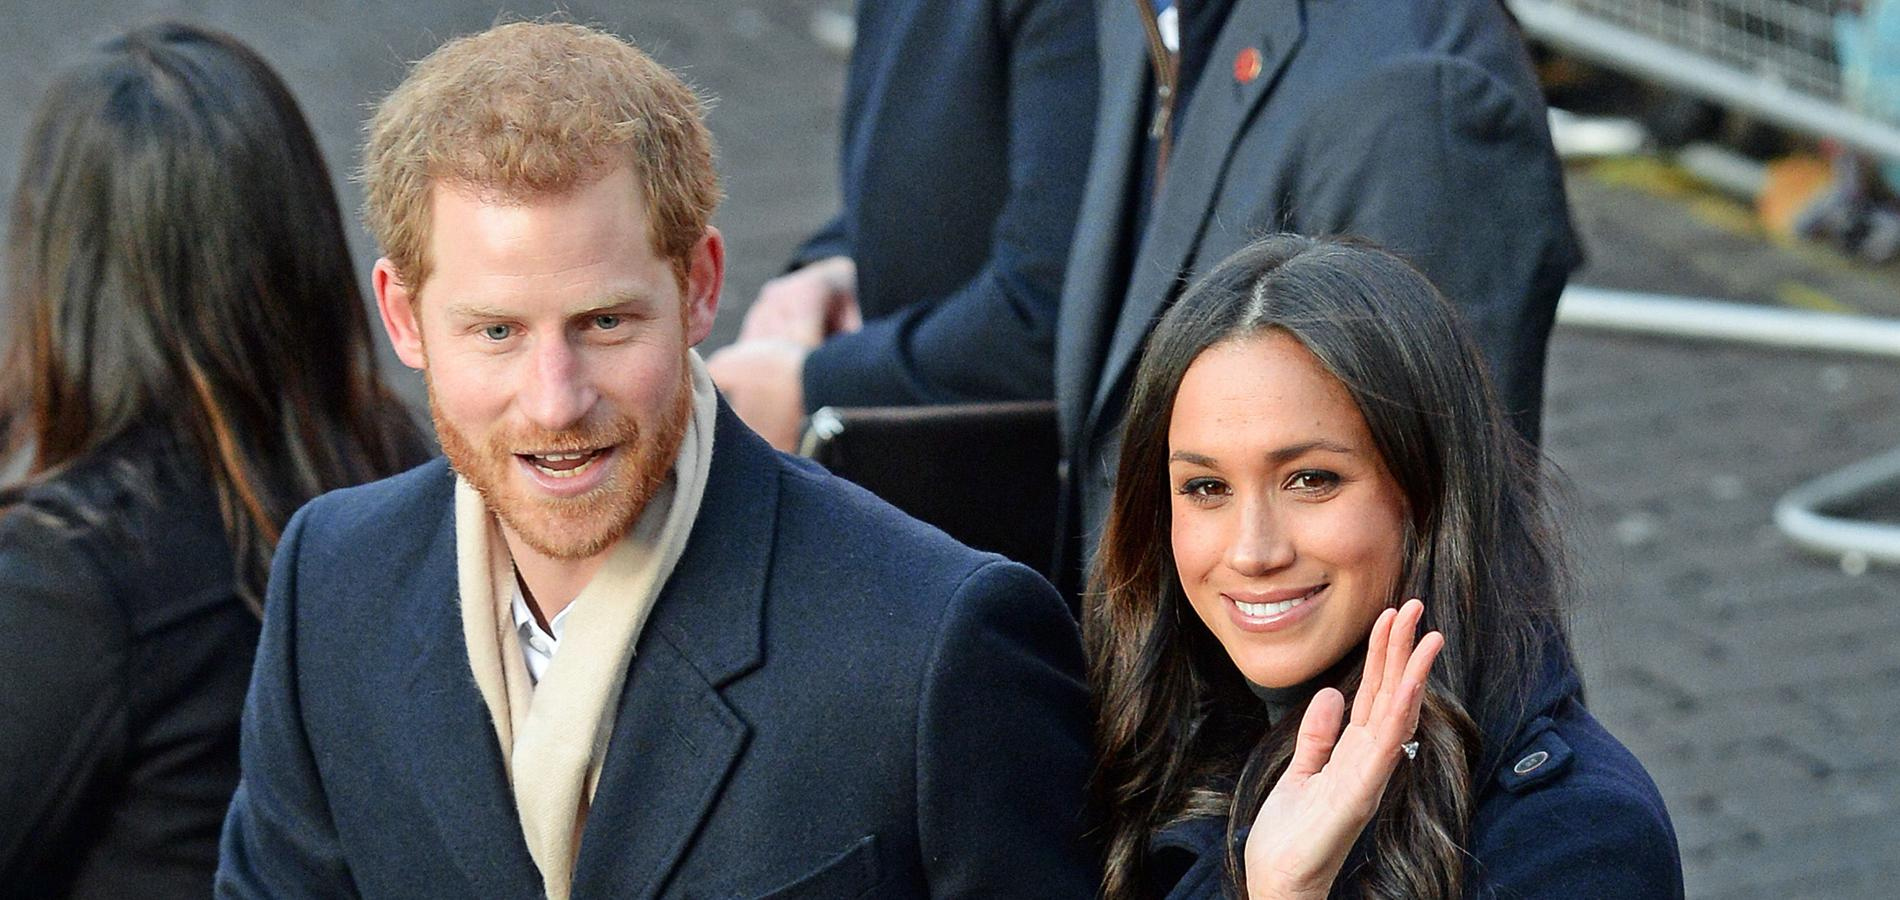 À vos CVs, Meghan Markle et le prince Harry embauchent via LinkedIn